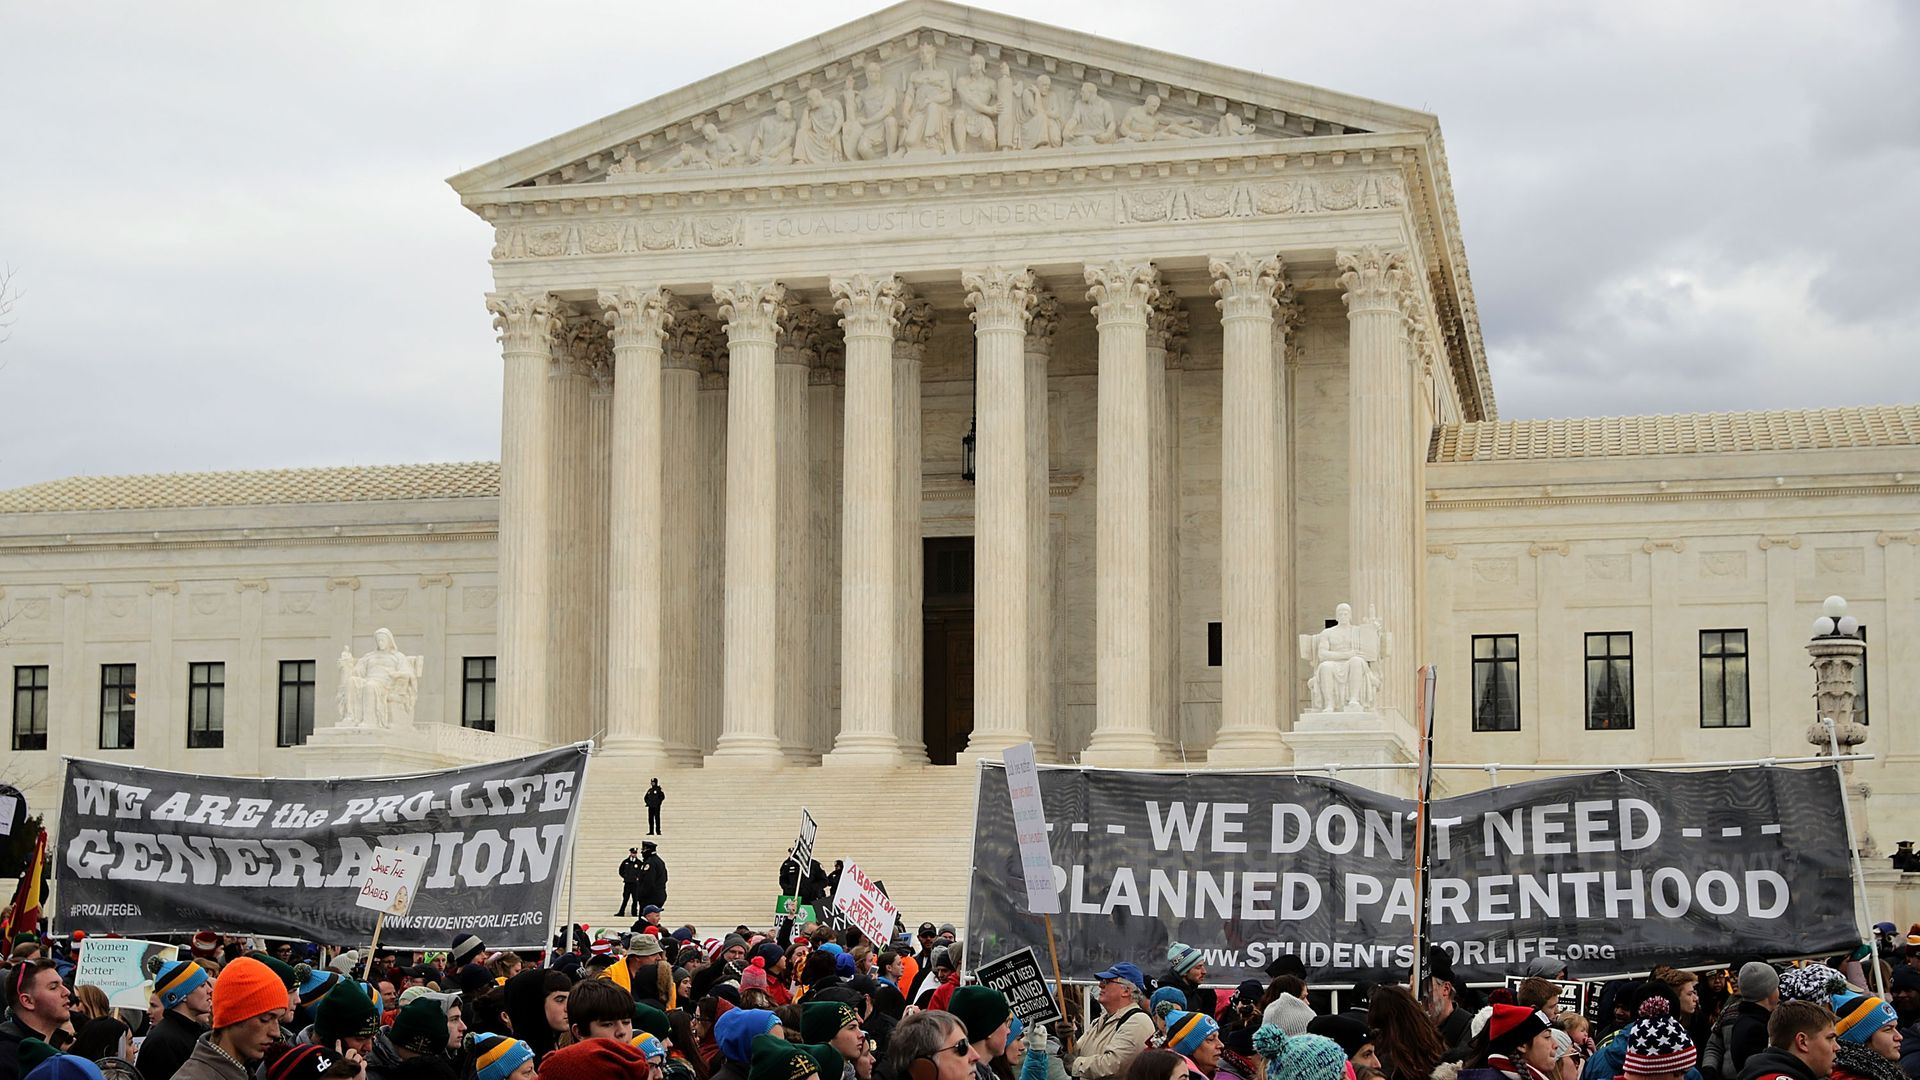 The annual March for Life, outside the Supreme Court building